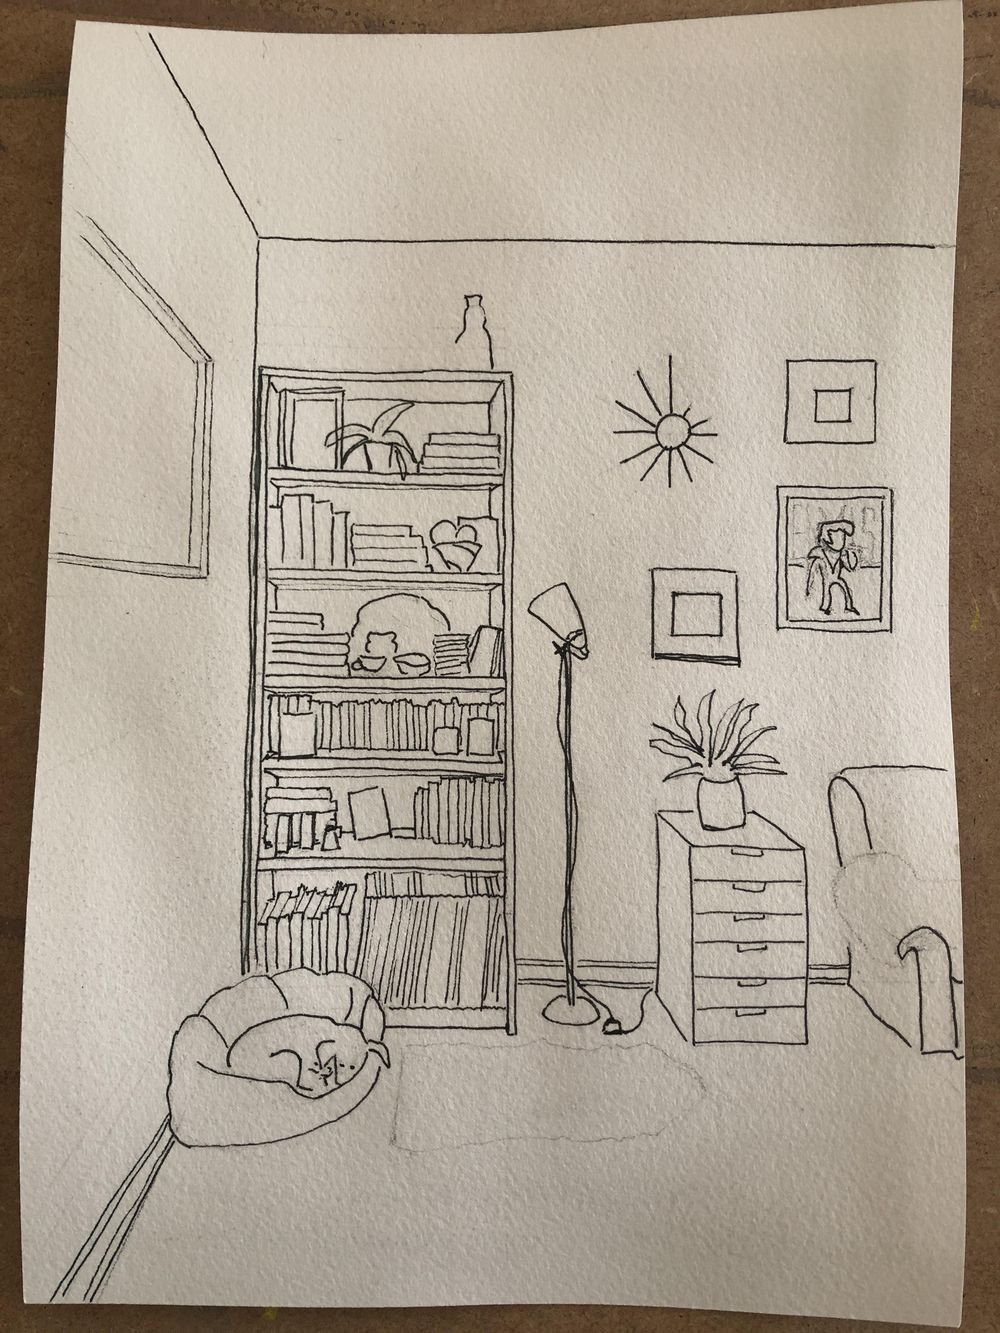 Interior sketching - one point perspective - image 6 - student project